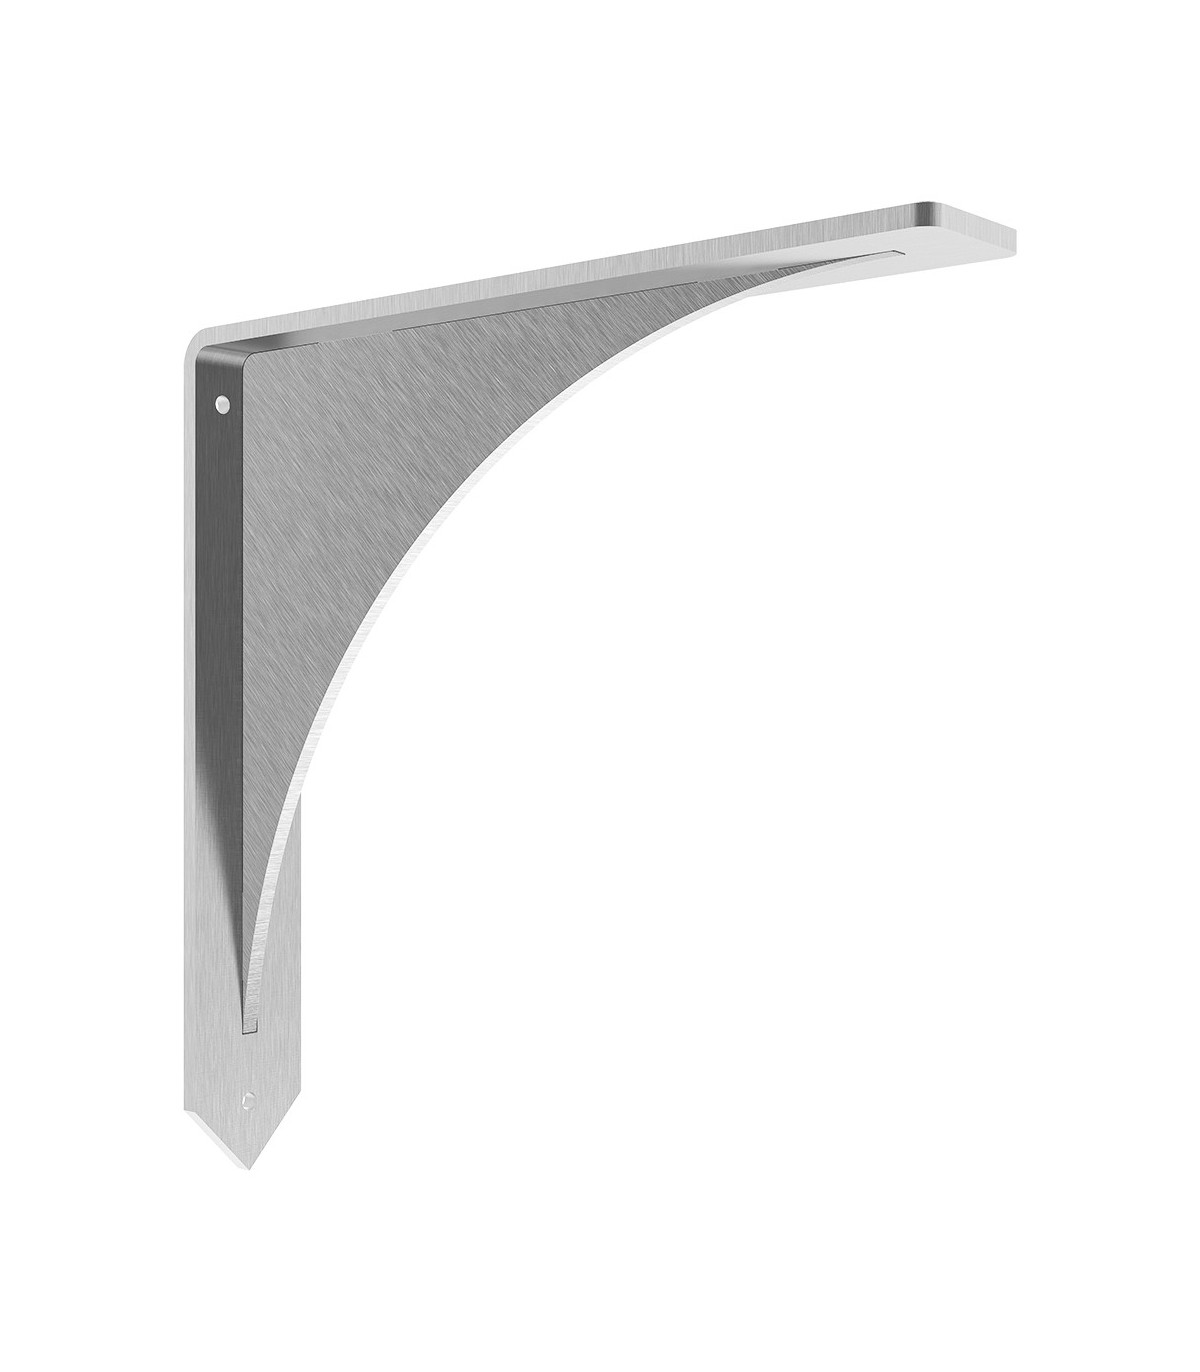 Arrowwood Granite Countertop Bracket 16x2x16 Stainless